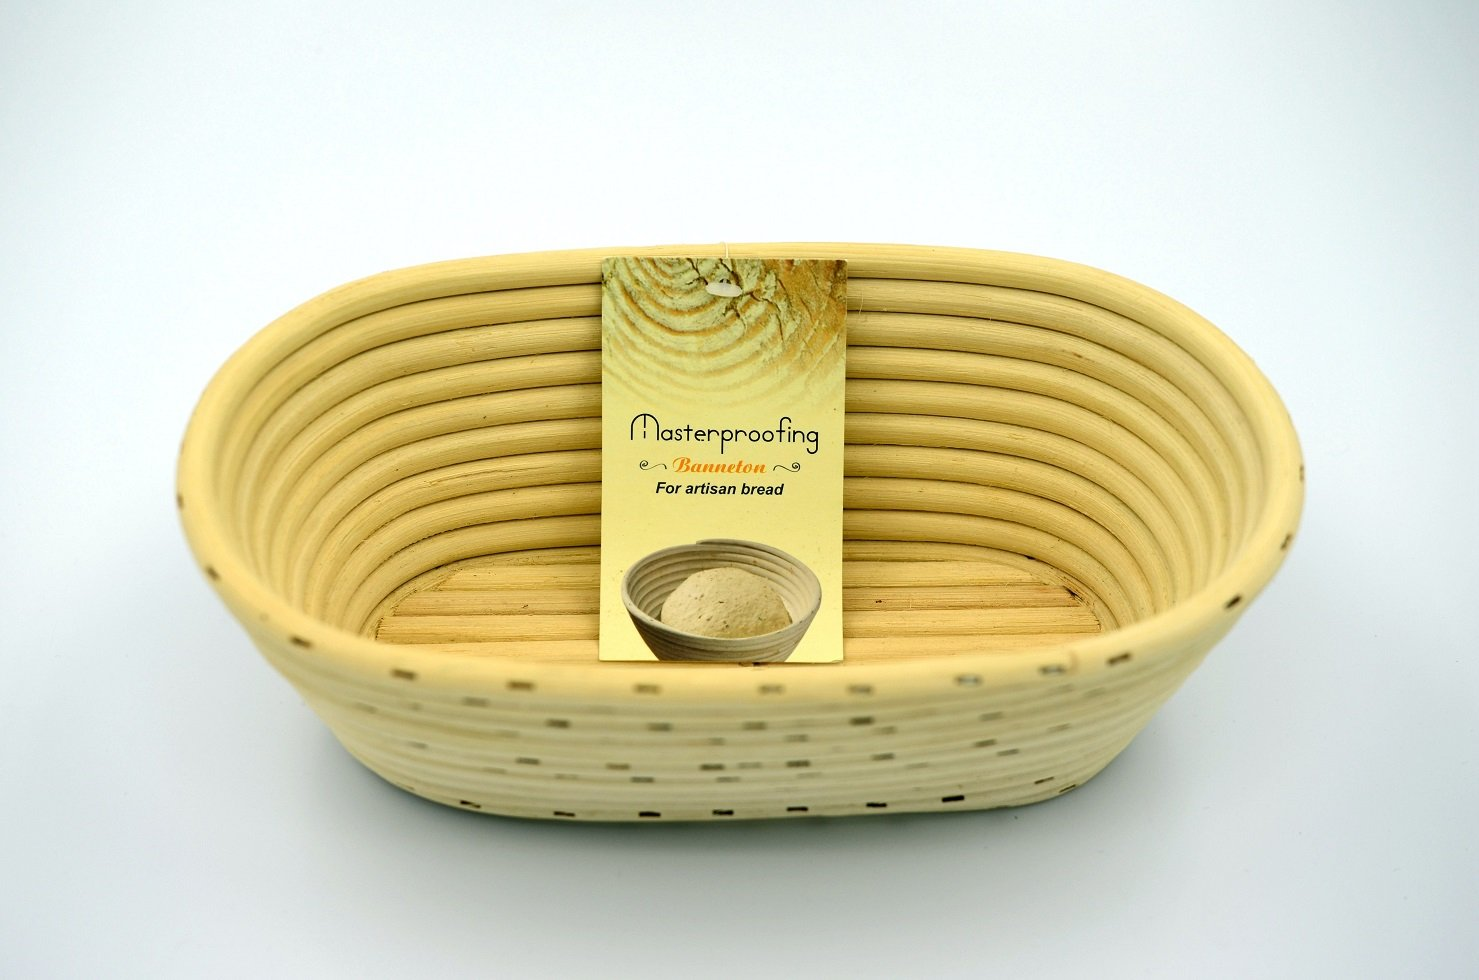 Masterproofing 2 Pcs Oval Banneton Proofing Basket(500g Dough) by Masterproofing